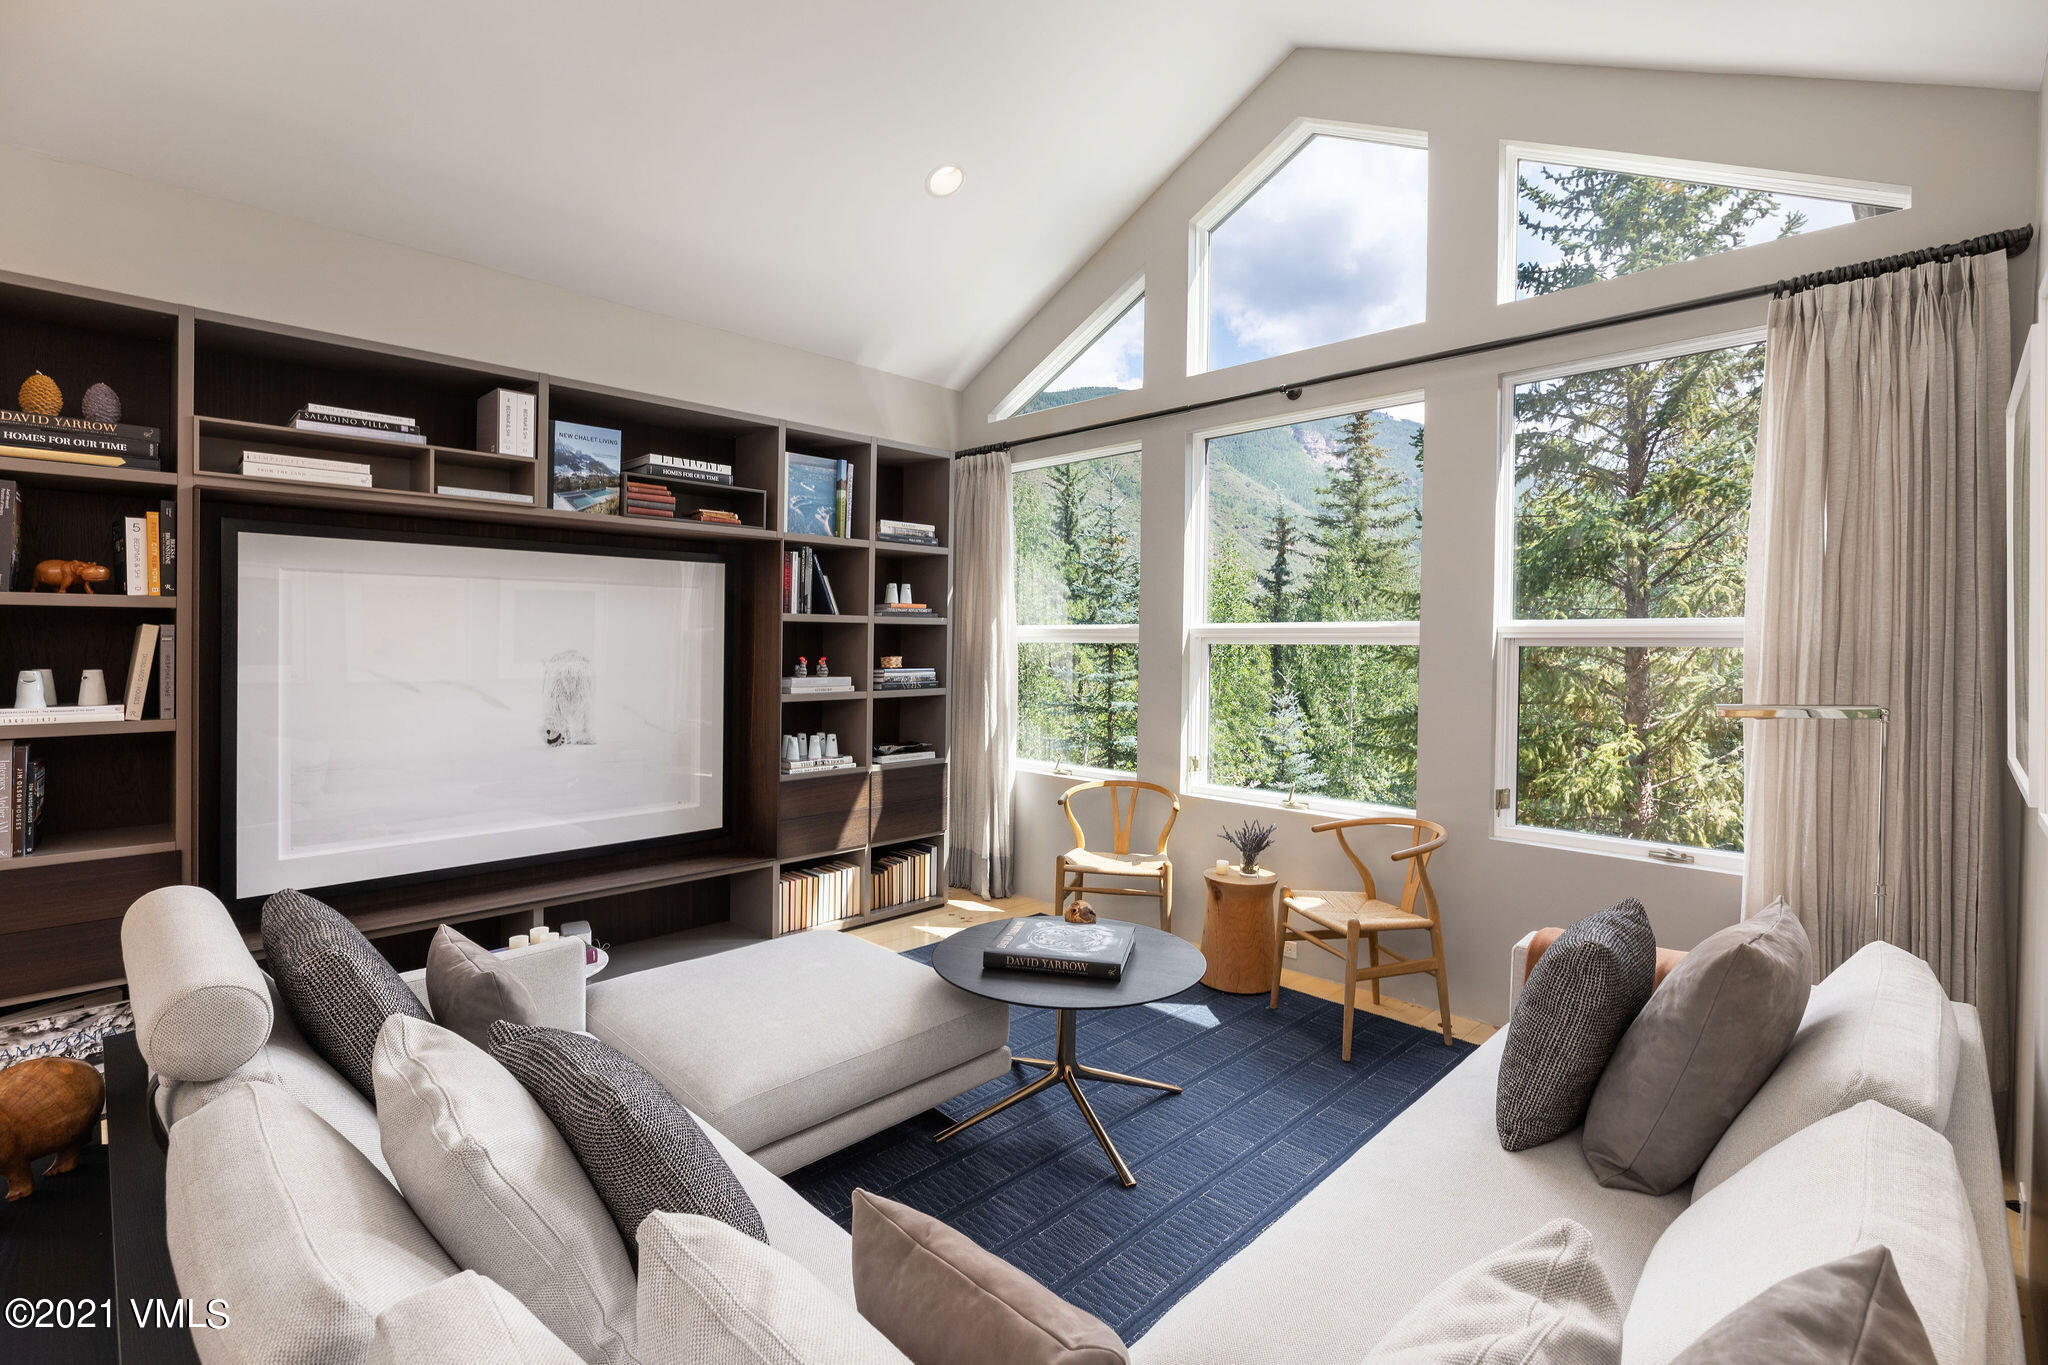 Conveniently located within walking distance of Golden Peak, this Vail Village condo lives like a private Townhome while delivering a suite of amenities including indoor/outdoor pool, spa, fitness center and property management. Remodeled with clean, soft finishes, the layout is great for large families or visiting guests. The lower level includes a heated driveway and garage, mud room, elevator access, and spacious non-conforming 5th bedroom with ensuite bath. The next level has 3 more large bedrooms and 3 baths. This home's main level is seamlessly open, anchored by a sleek, modern kitchen surrounded by a dining room and 2 separate living rooms, one with Gore Range and Vail Golf Course views, the other with a walk-out patio. This leaves a private master suite on the upper level with walk-out deck, walk-in closet and loft area for working from home. Though walking distance to Vail Village's amenities and the Ford amphitheater, this home is also located on the bus route for easy access to Lionshead or other parts of town.